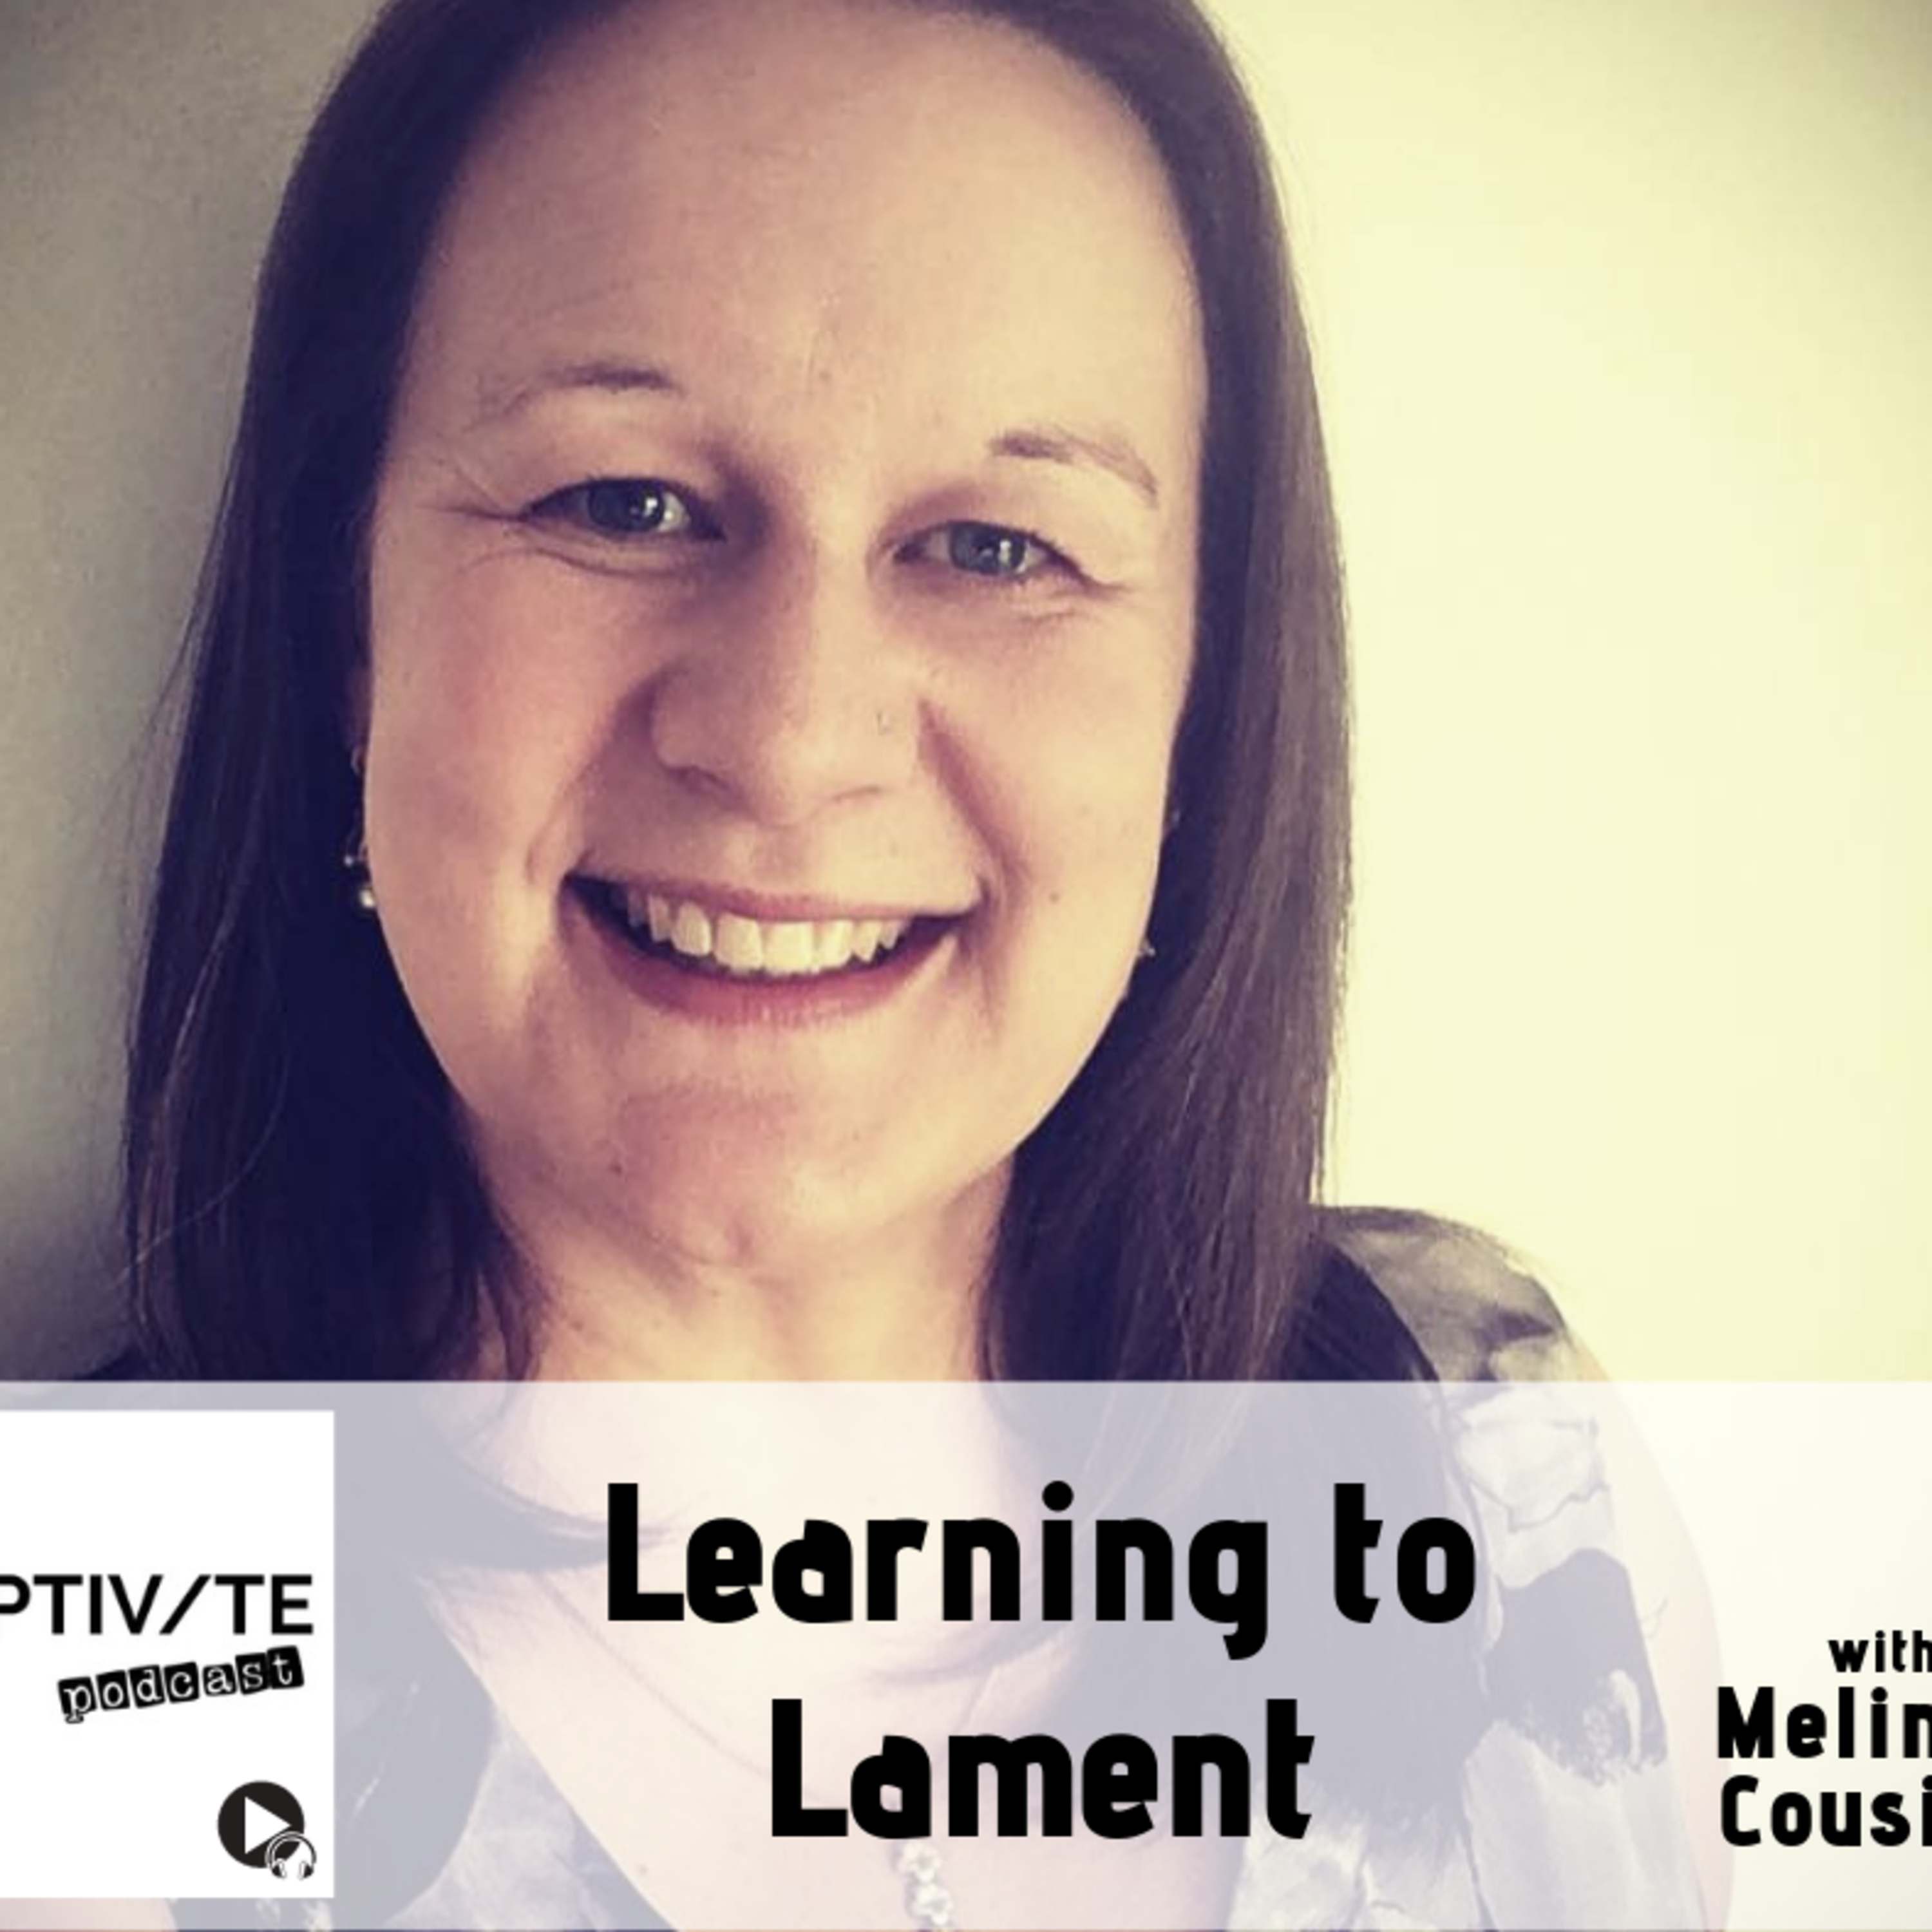 CP 08: Melinda Cousins - Learning to lament